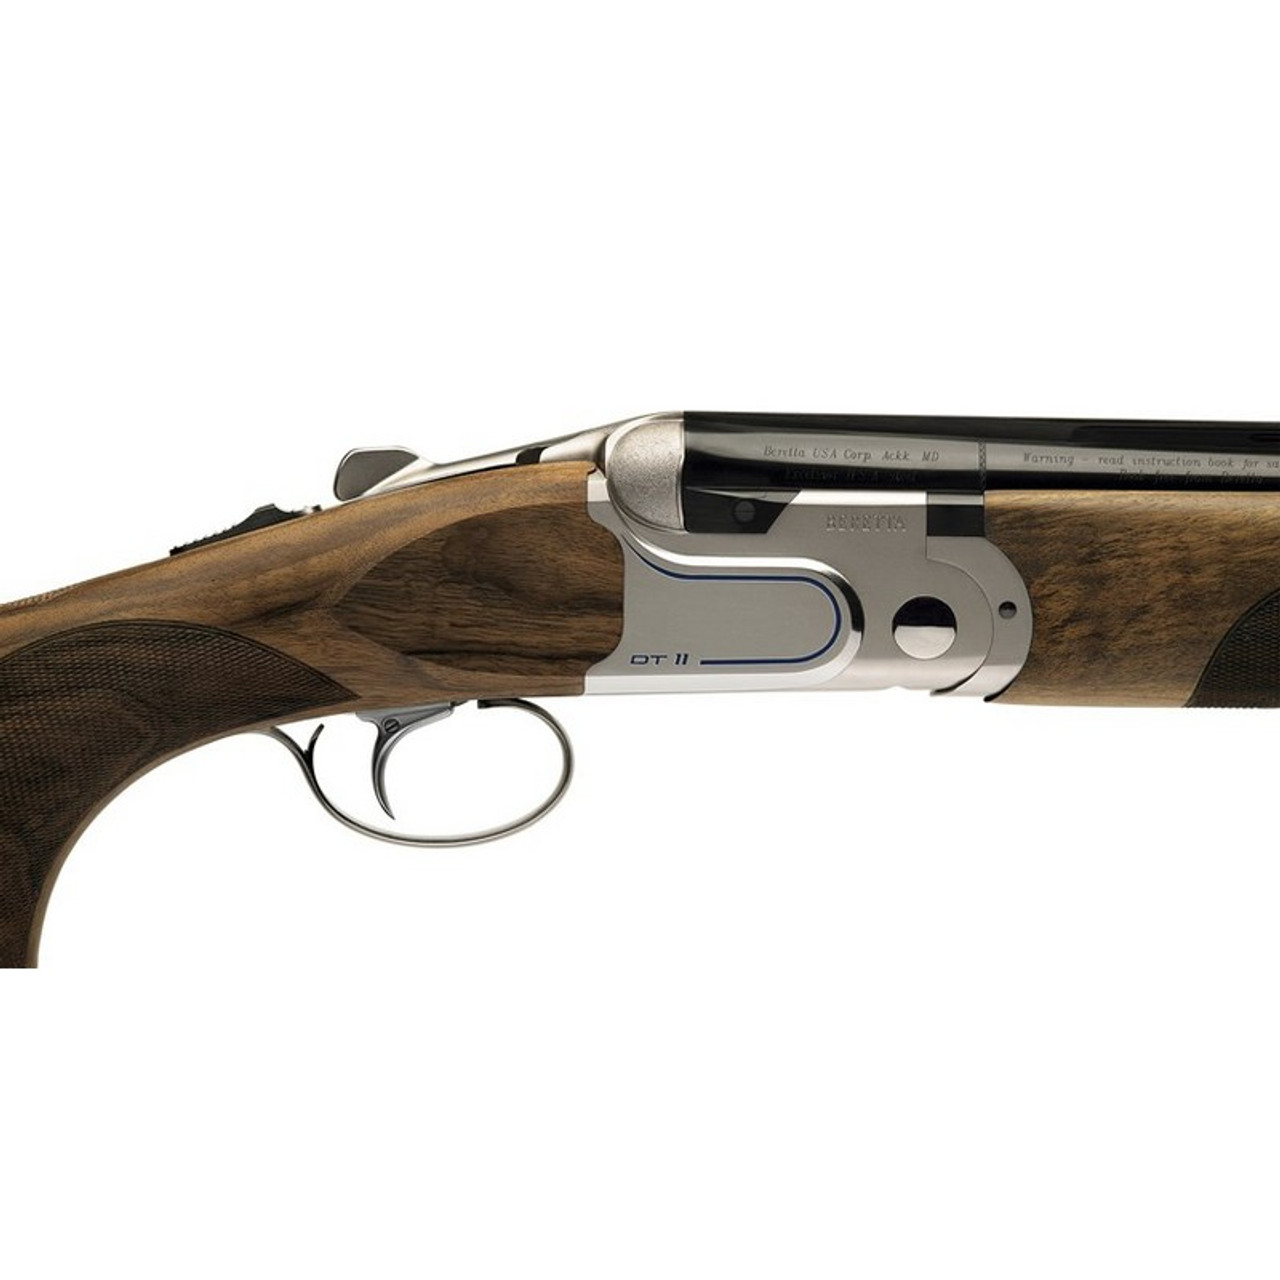 Beretta DT11 Sporter Adjustable Stock12G